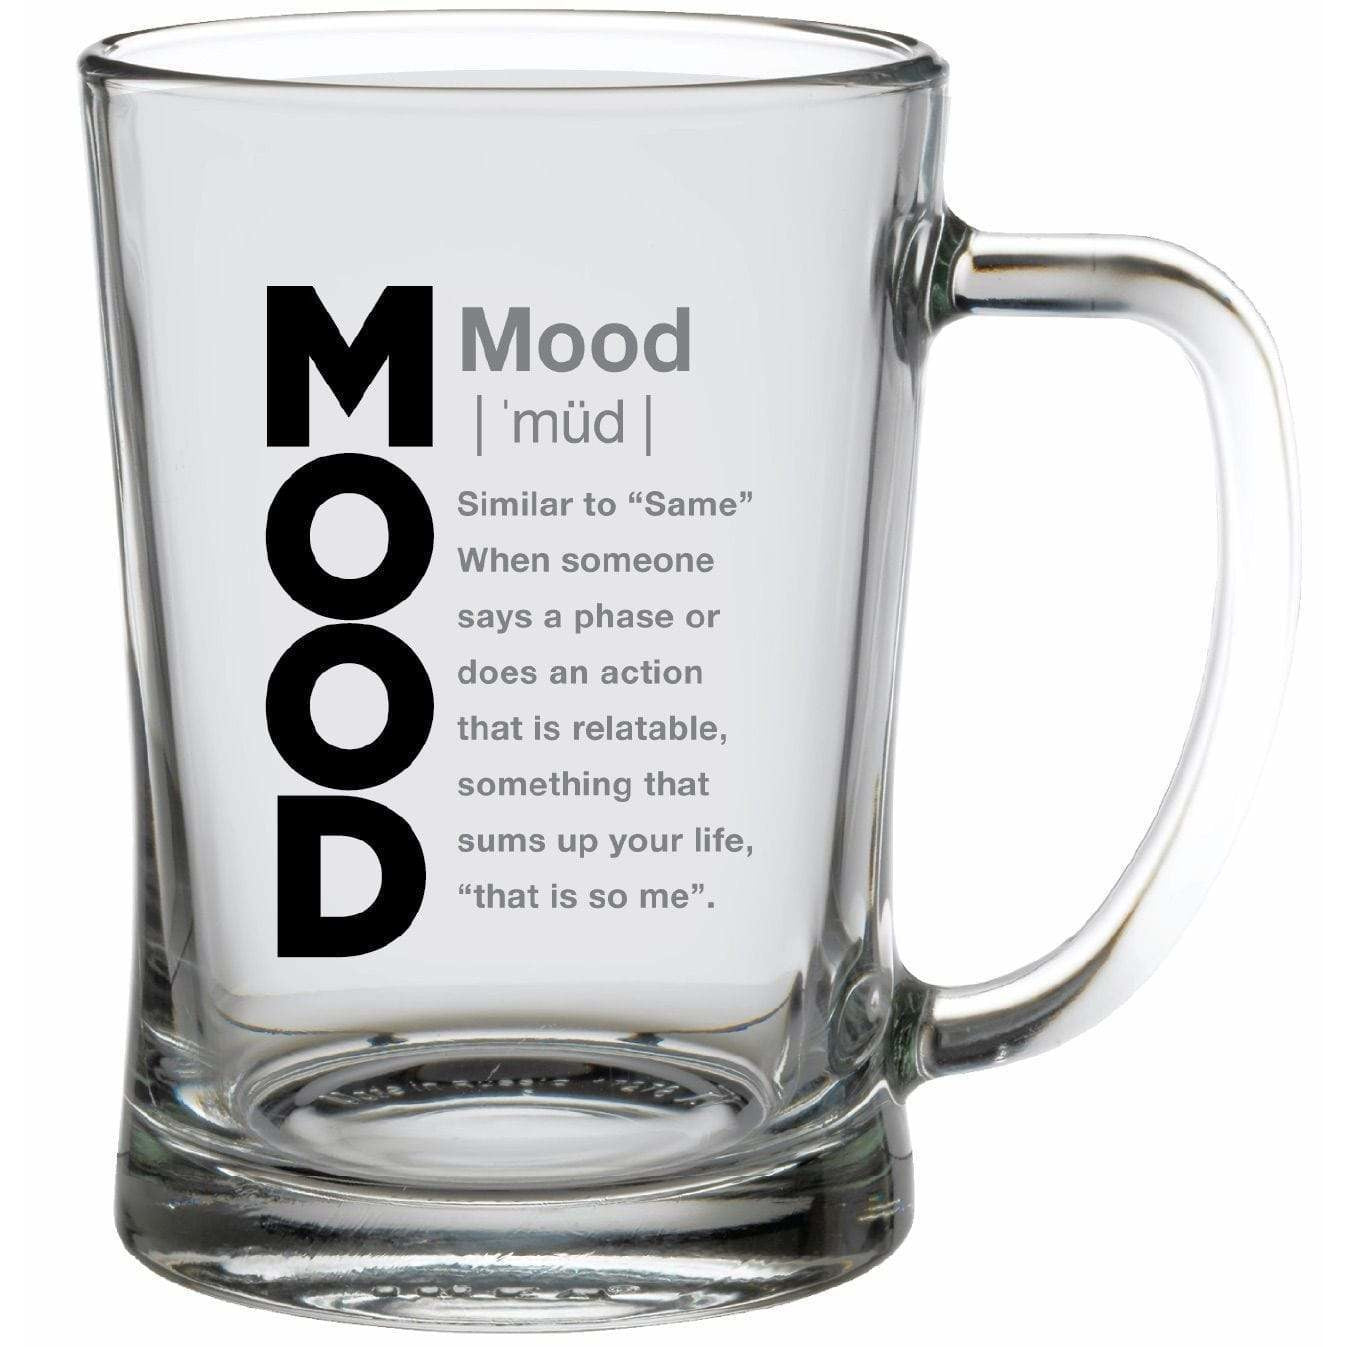 Streamline Mugs Super 22oz Slang Gang Glass Mug - MOOD